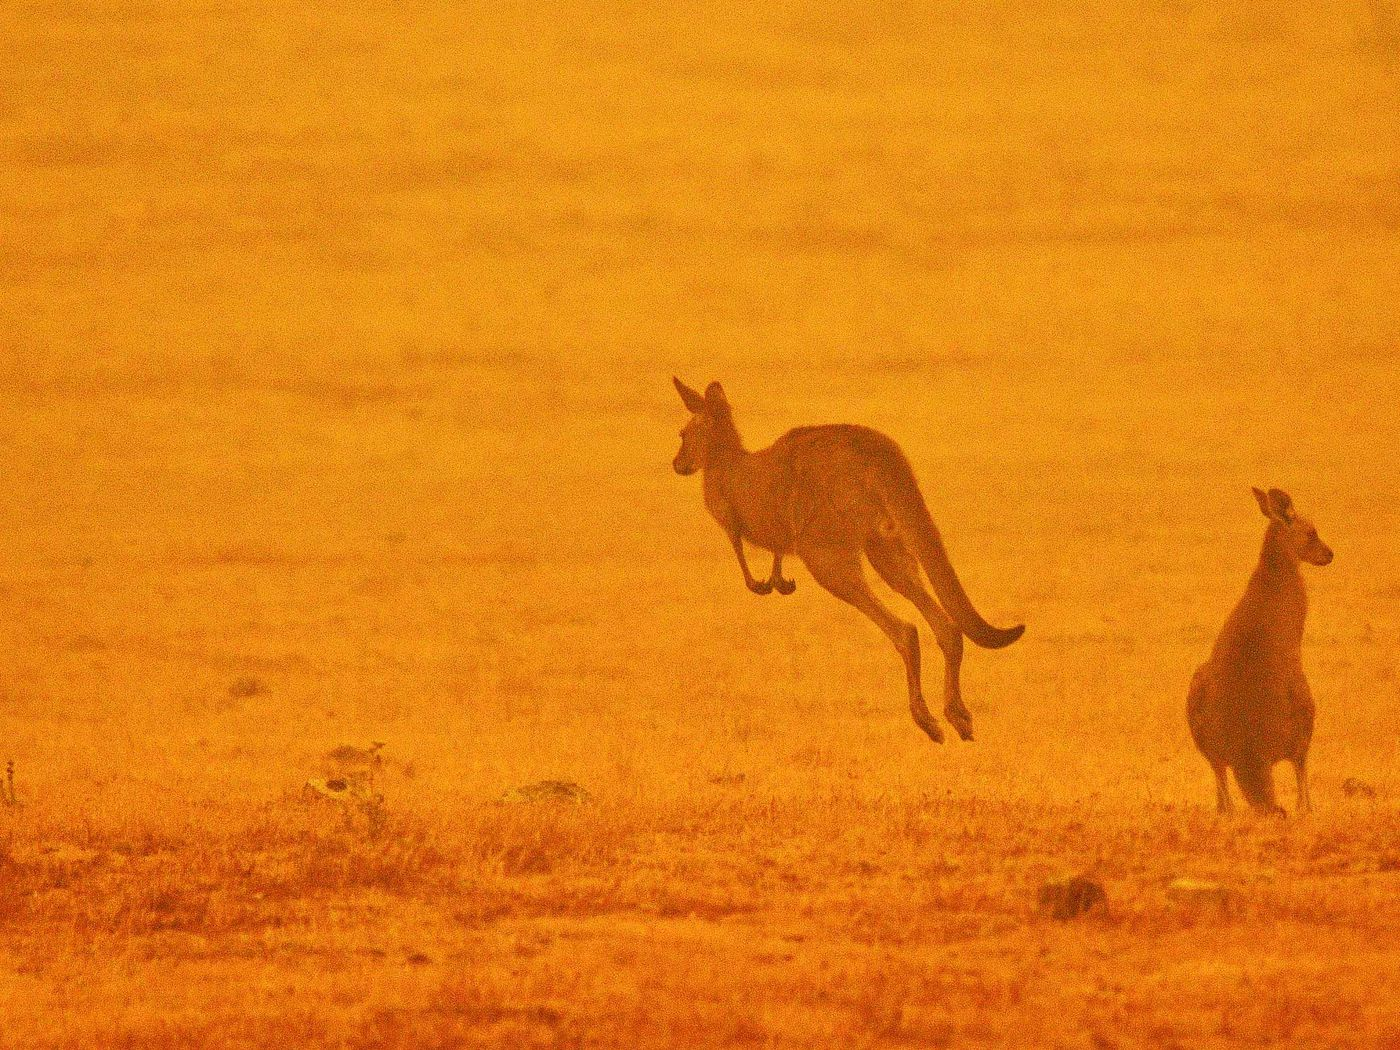 How many animals died in Australia fires? 1 billion, experts estimate. - Vox